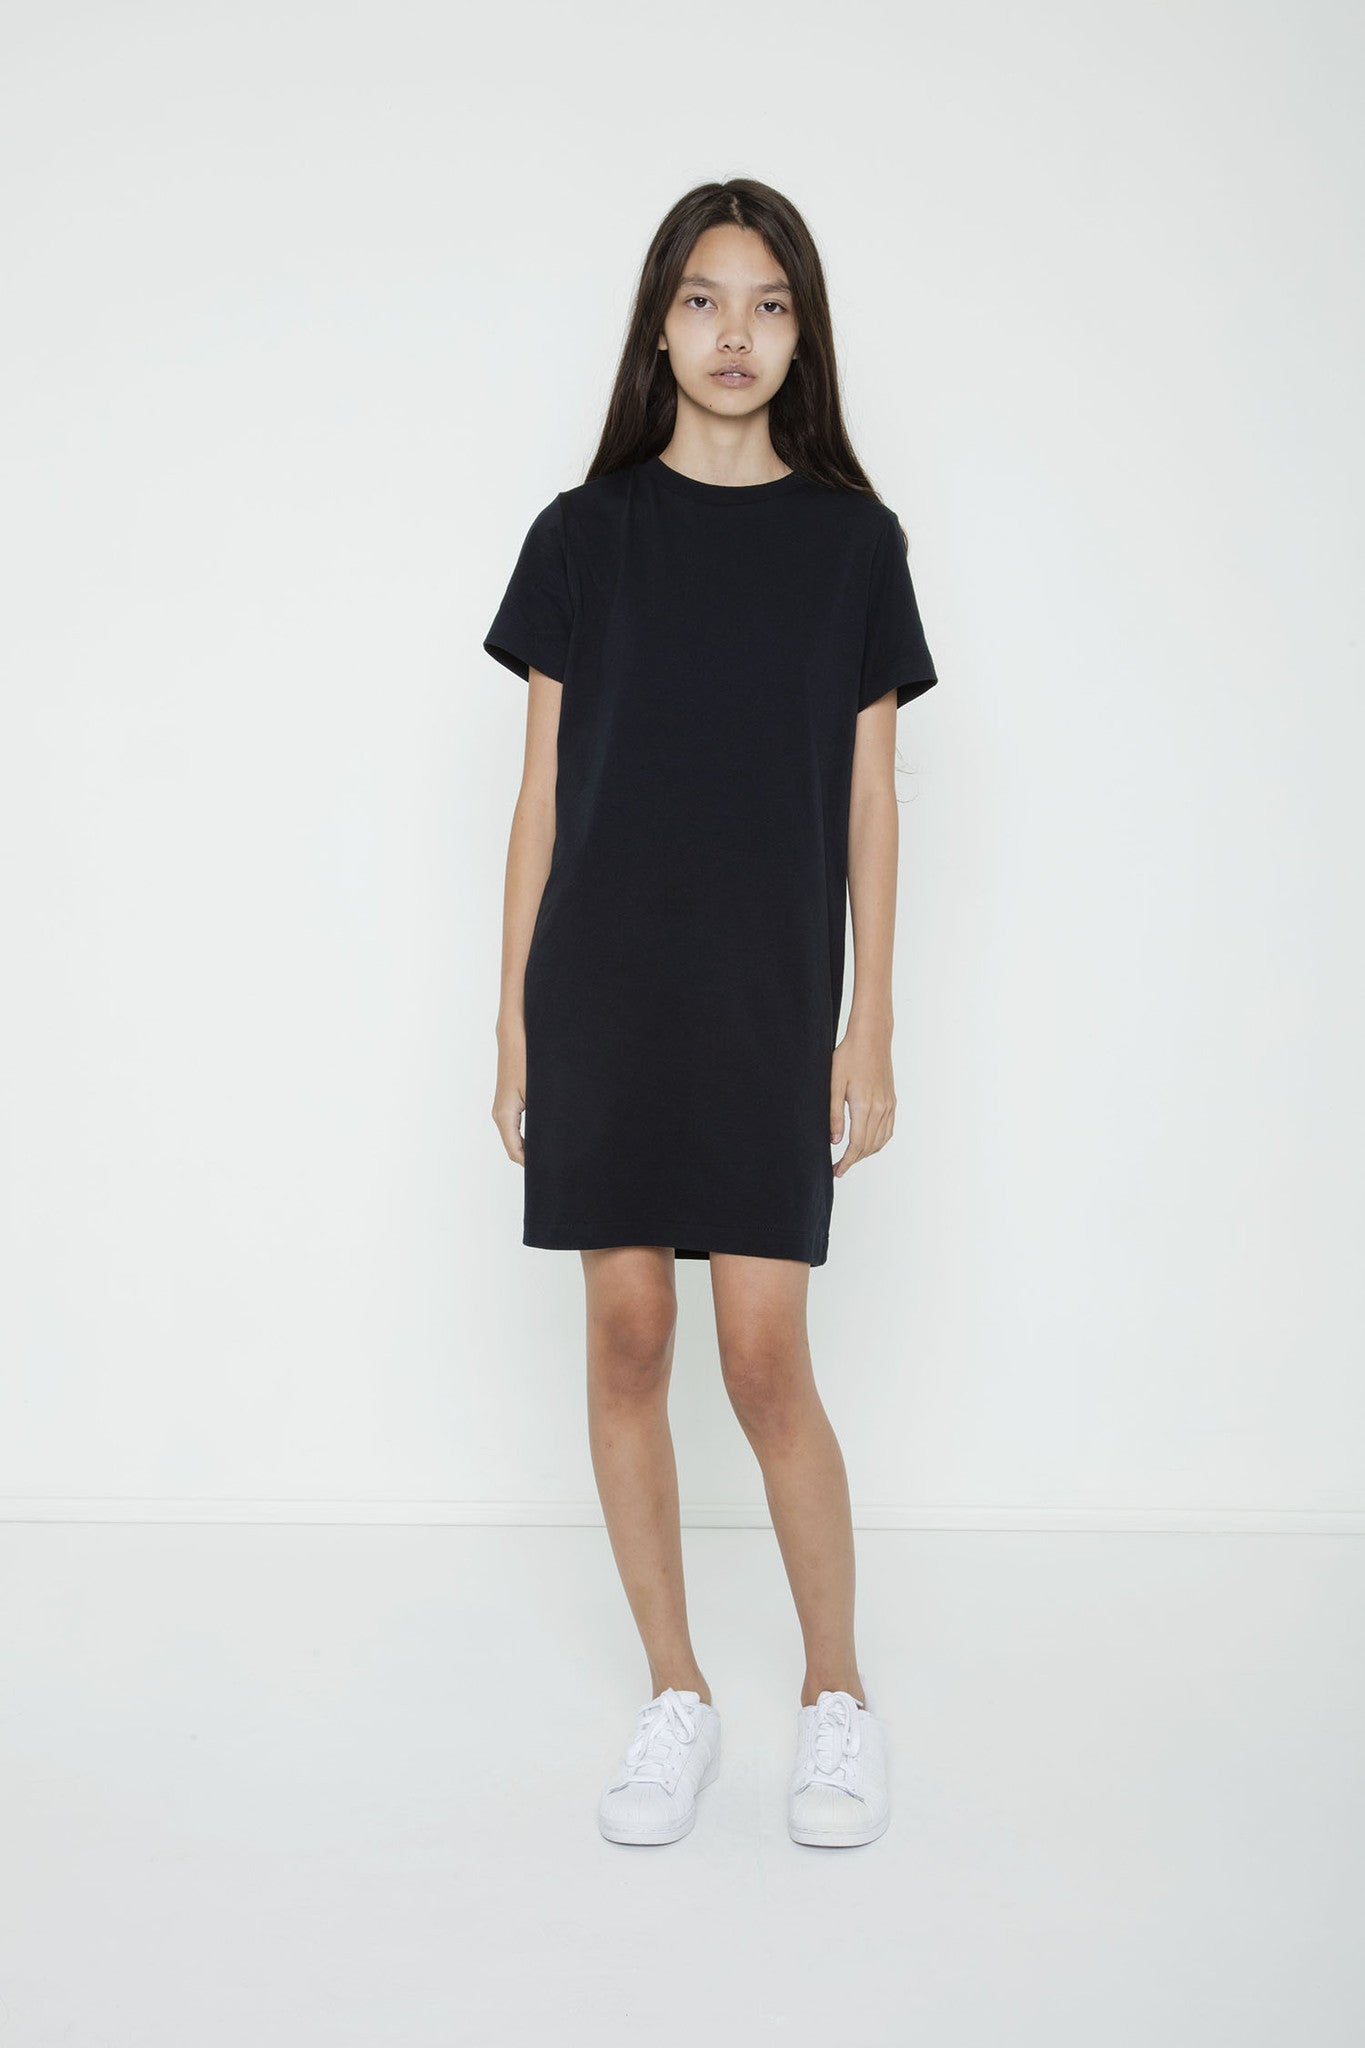 dress up t shirt dress